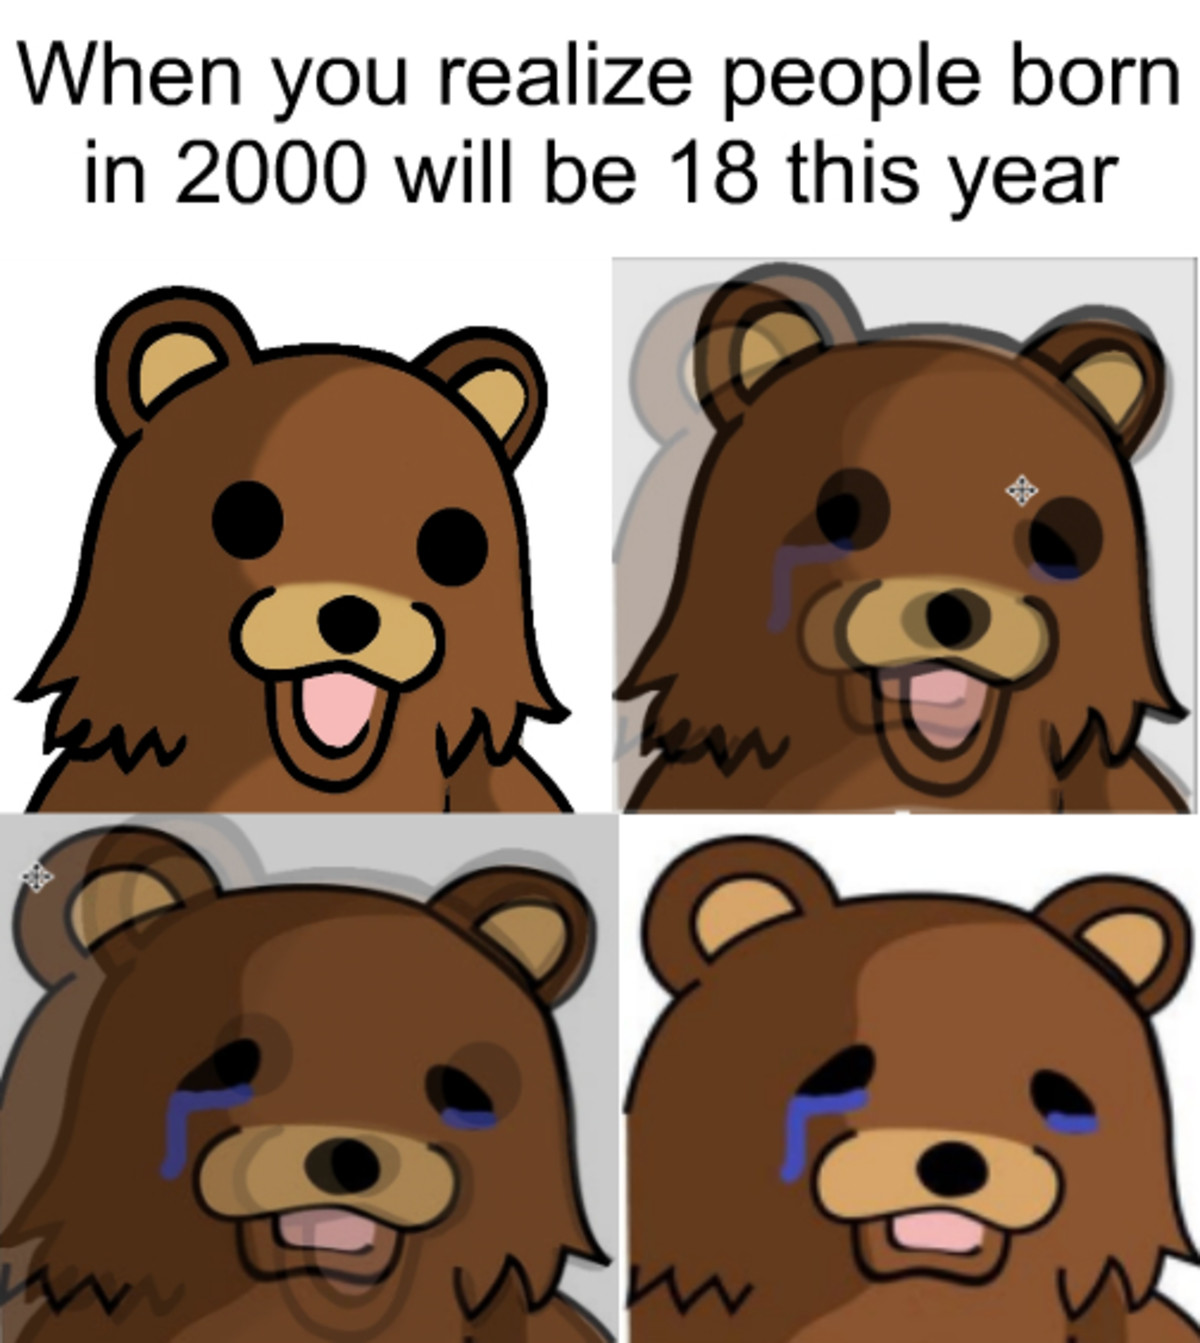 Today's A Terrible Day For Rain. join list: OmnisSmolGurls (228 subs)Mention History. you !, , people born Tlr. 2000 will be ?, this year. its been a long time since i saw someone posting pedo bear on this site